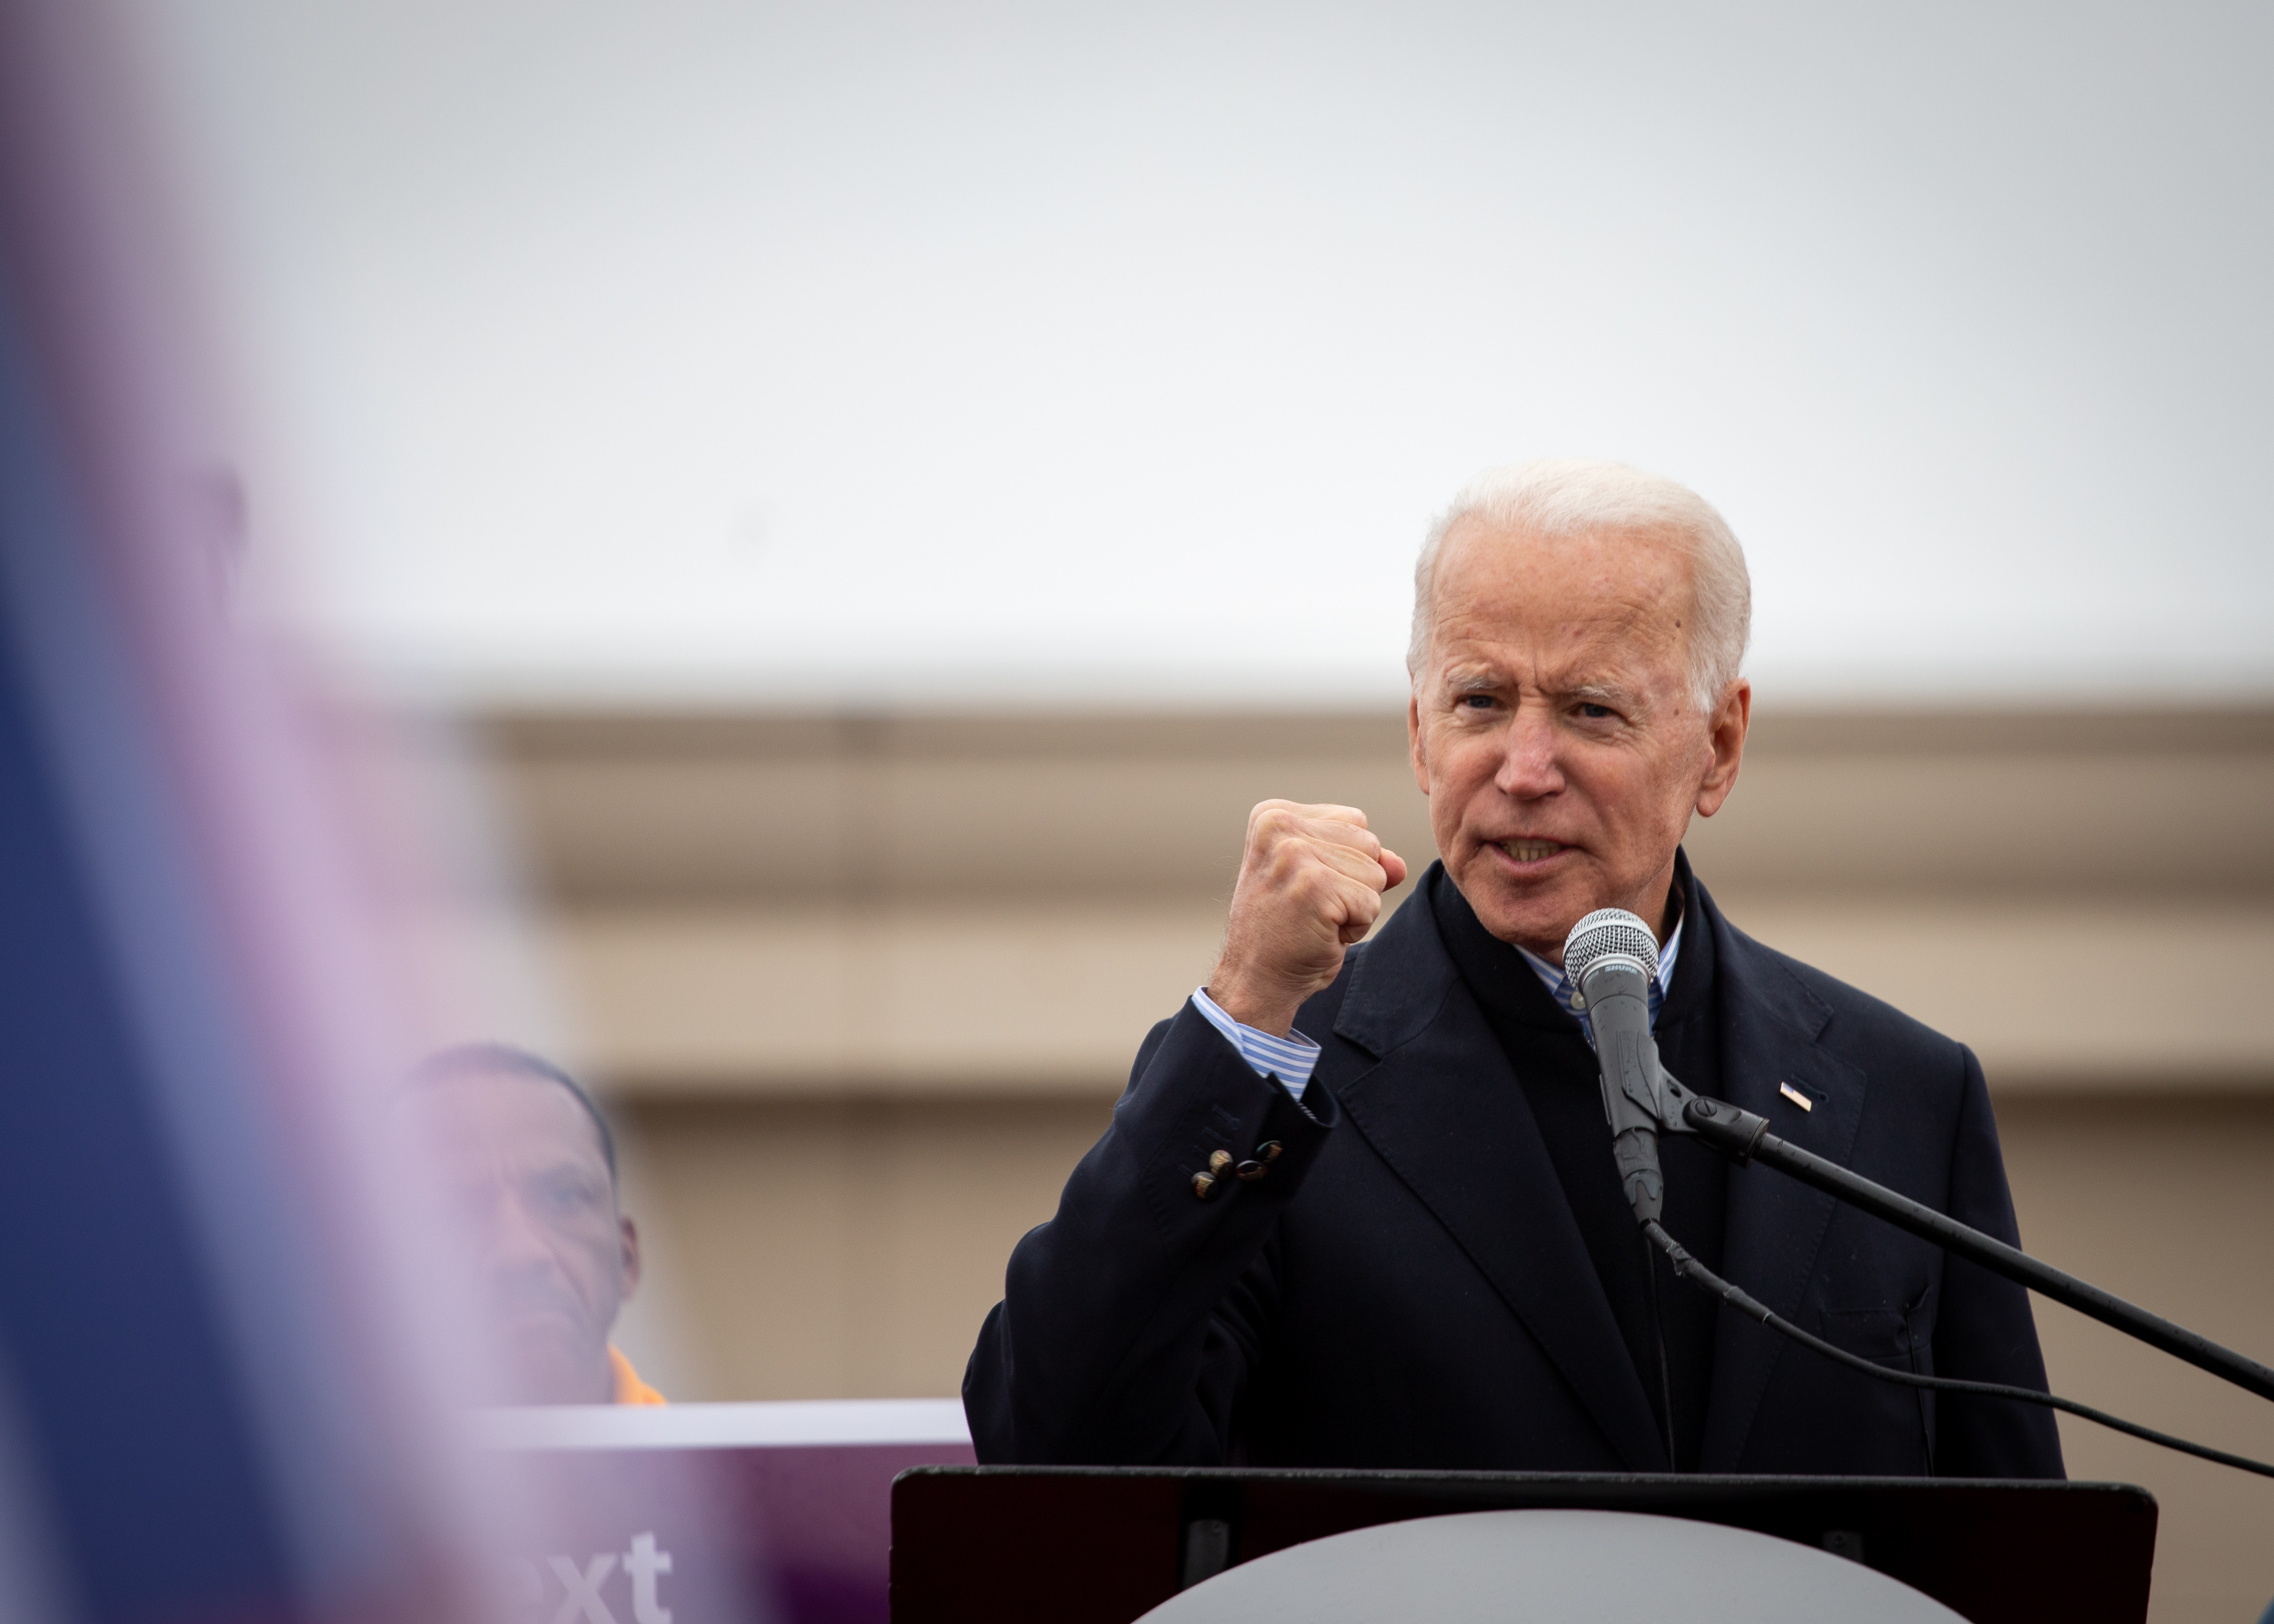 Joe Biden, Marty Walsh rally with Stop & Shop workers at picketing line in Dorchester